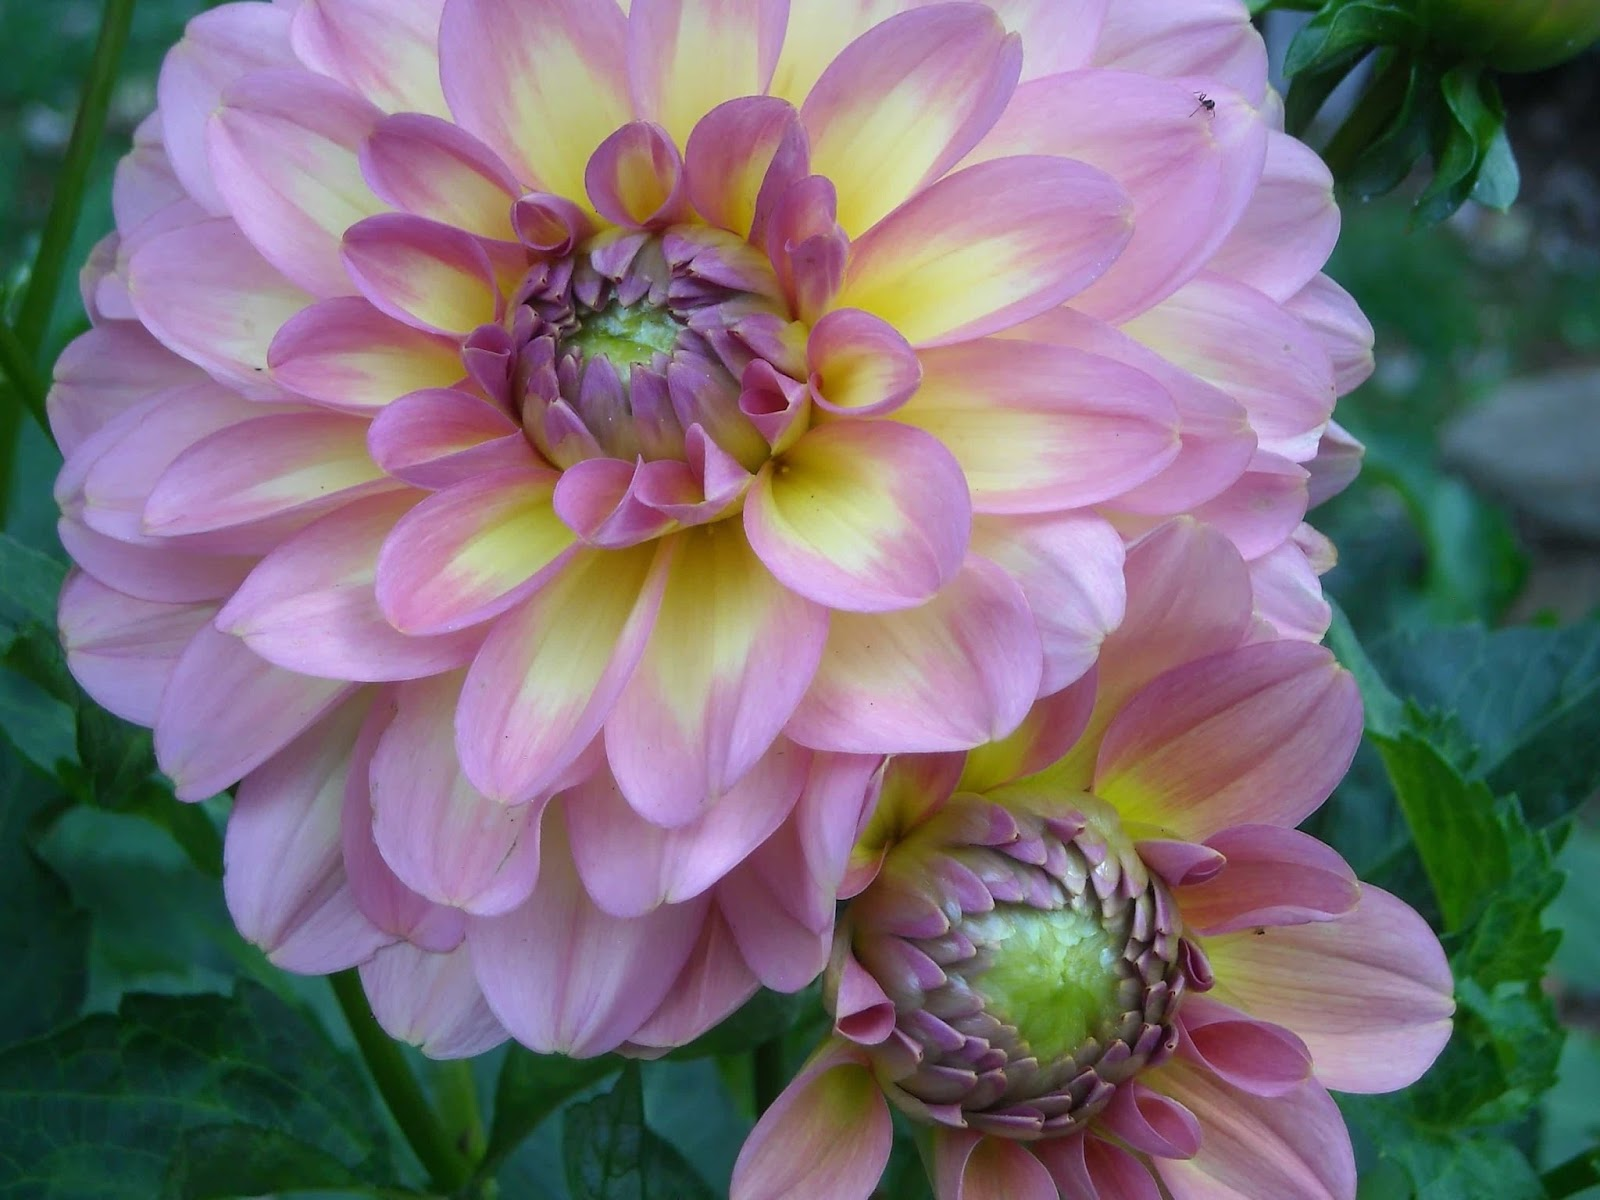 Real world gardener dahlia floral meanings and vase life in talking dahlia2bpinkg izmirmasajfo